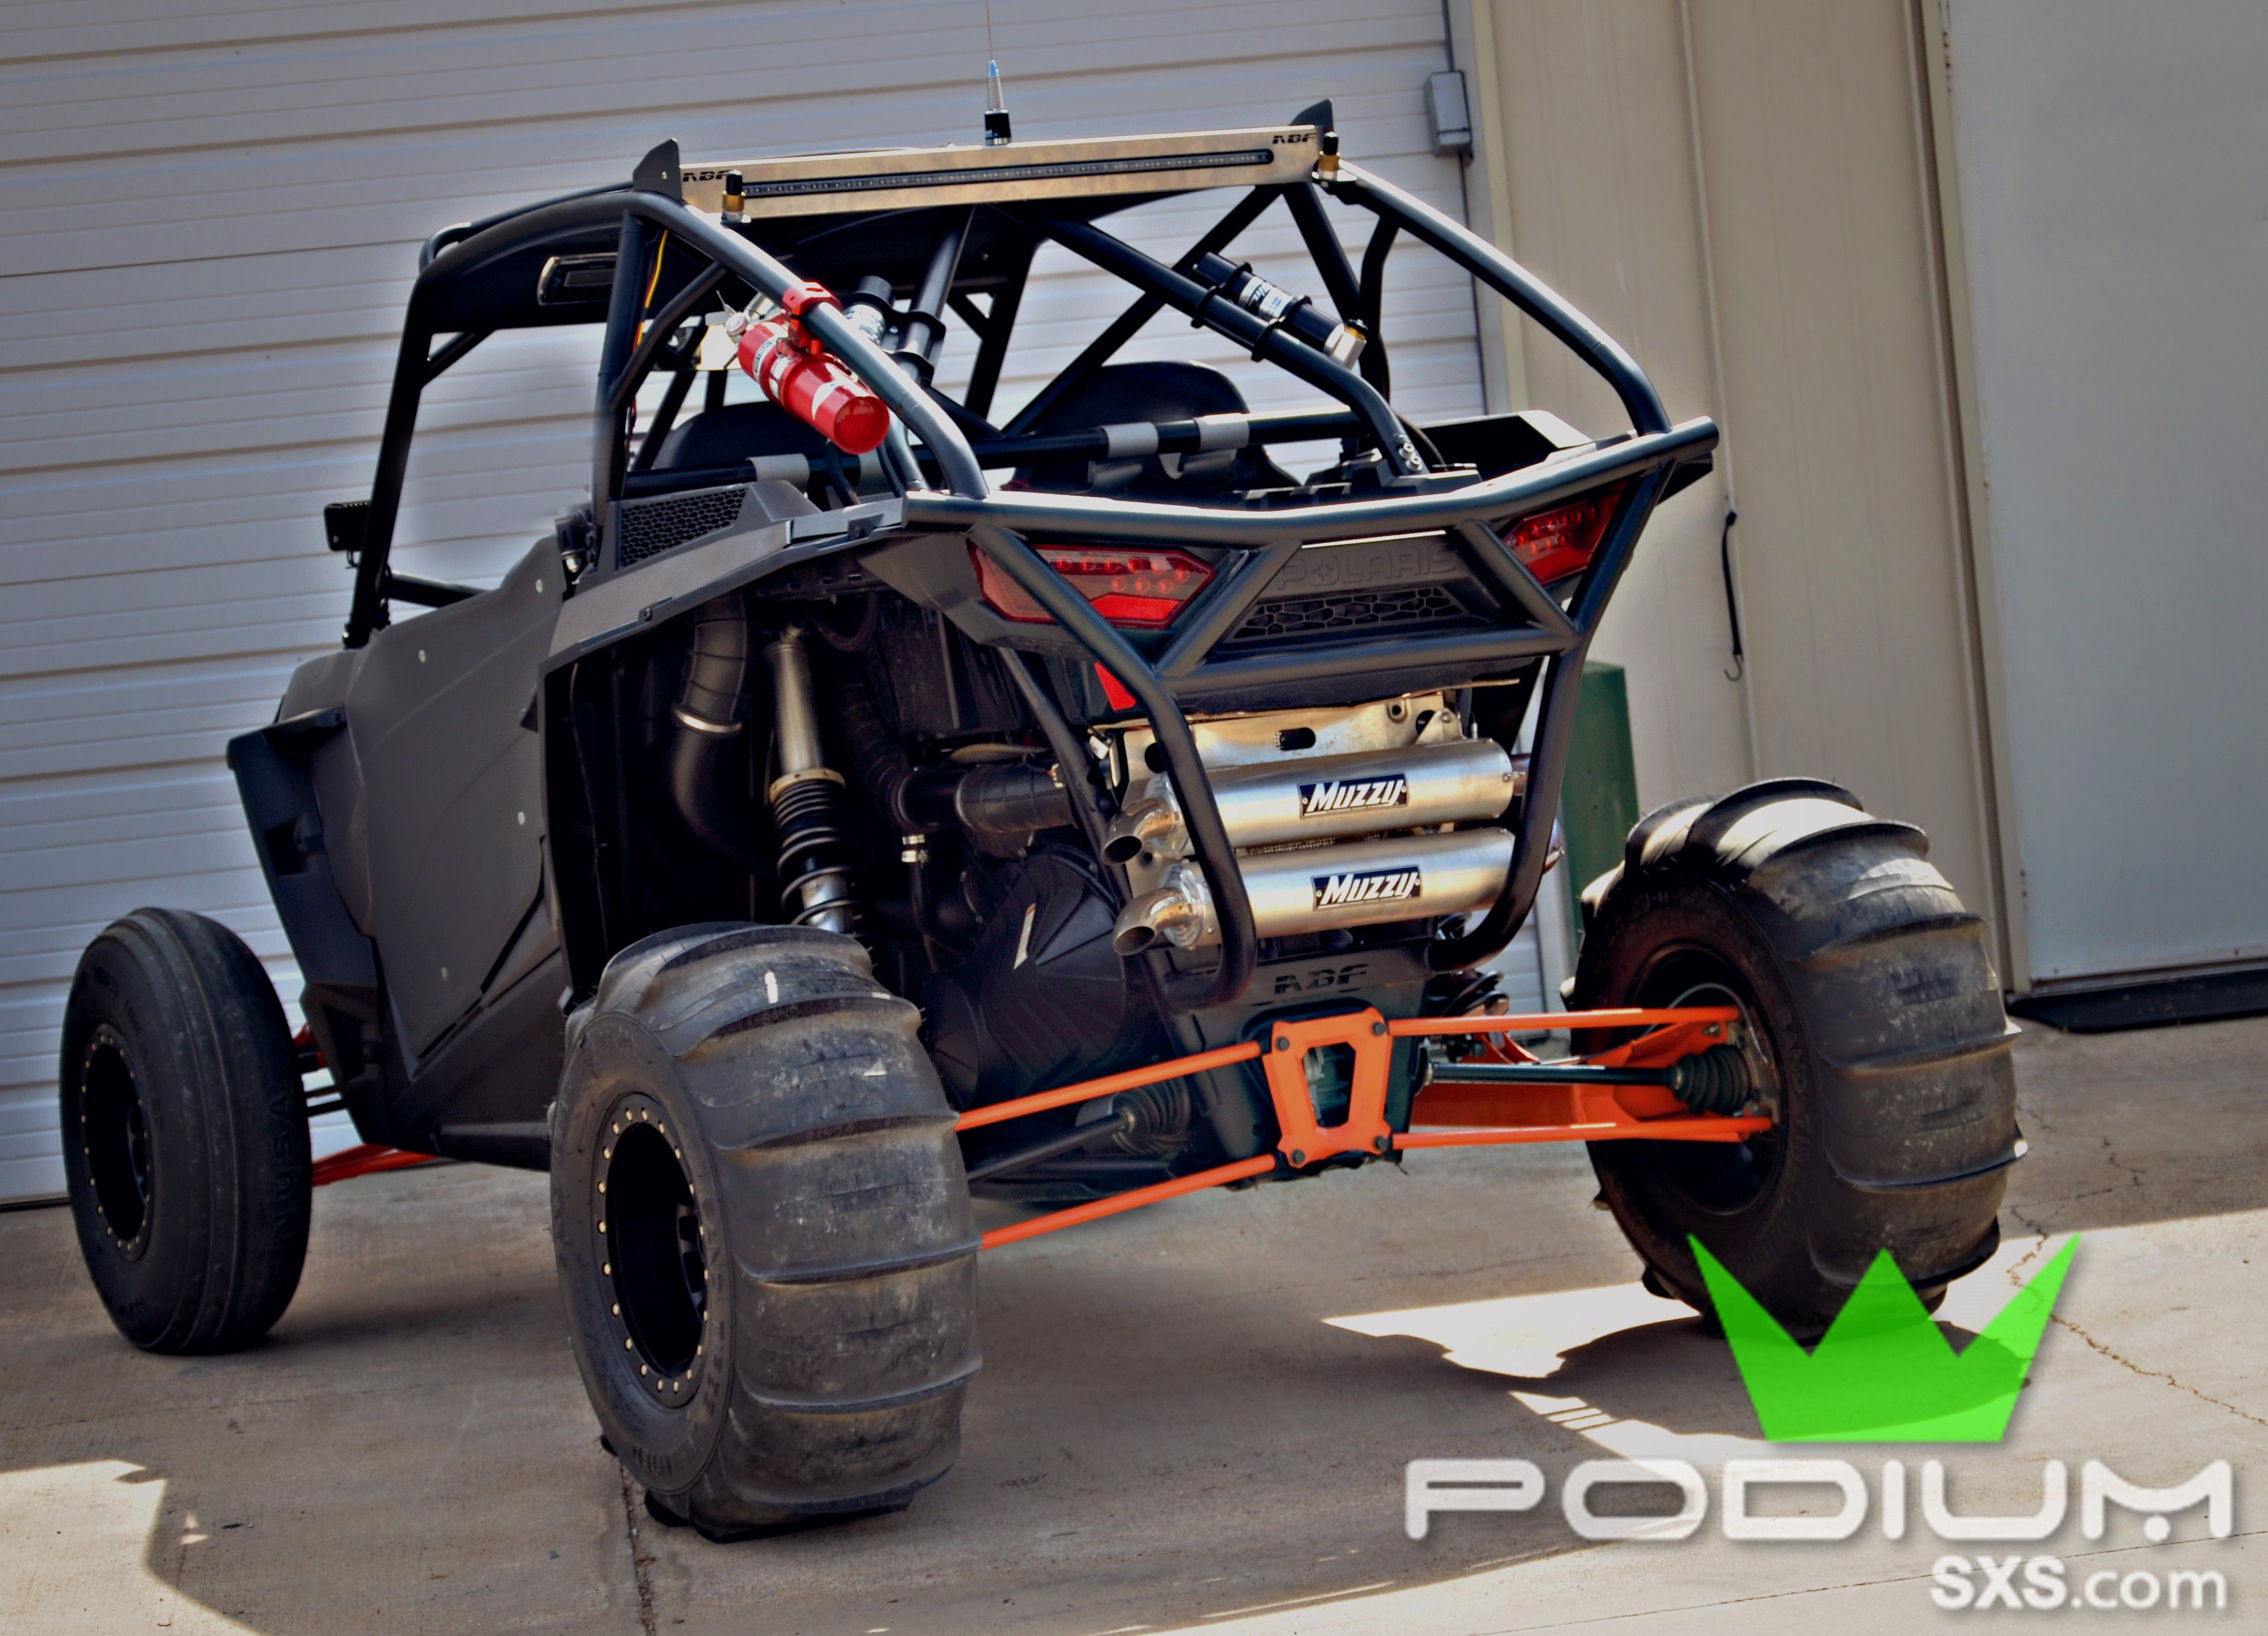 Polaris Rzr Xp 1000 Roll Cage F 18a 6 Lower Than Stock Race Inspired Light Weight And Indestructible Design Polaris Rzr Xp 1000 Polaris Rzr Polaris Rzr Xp